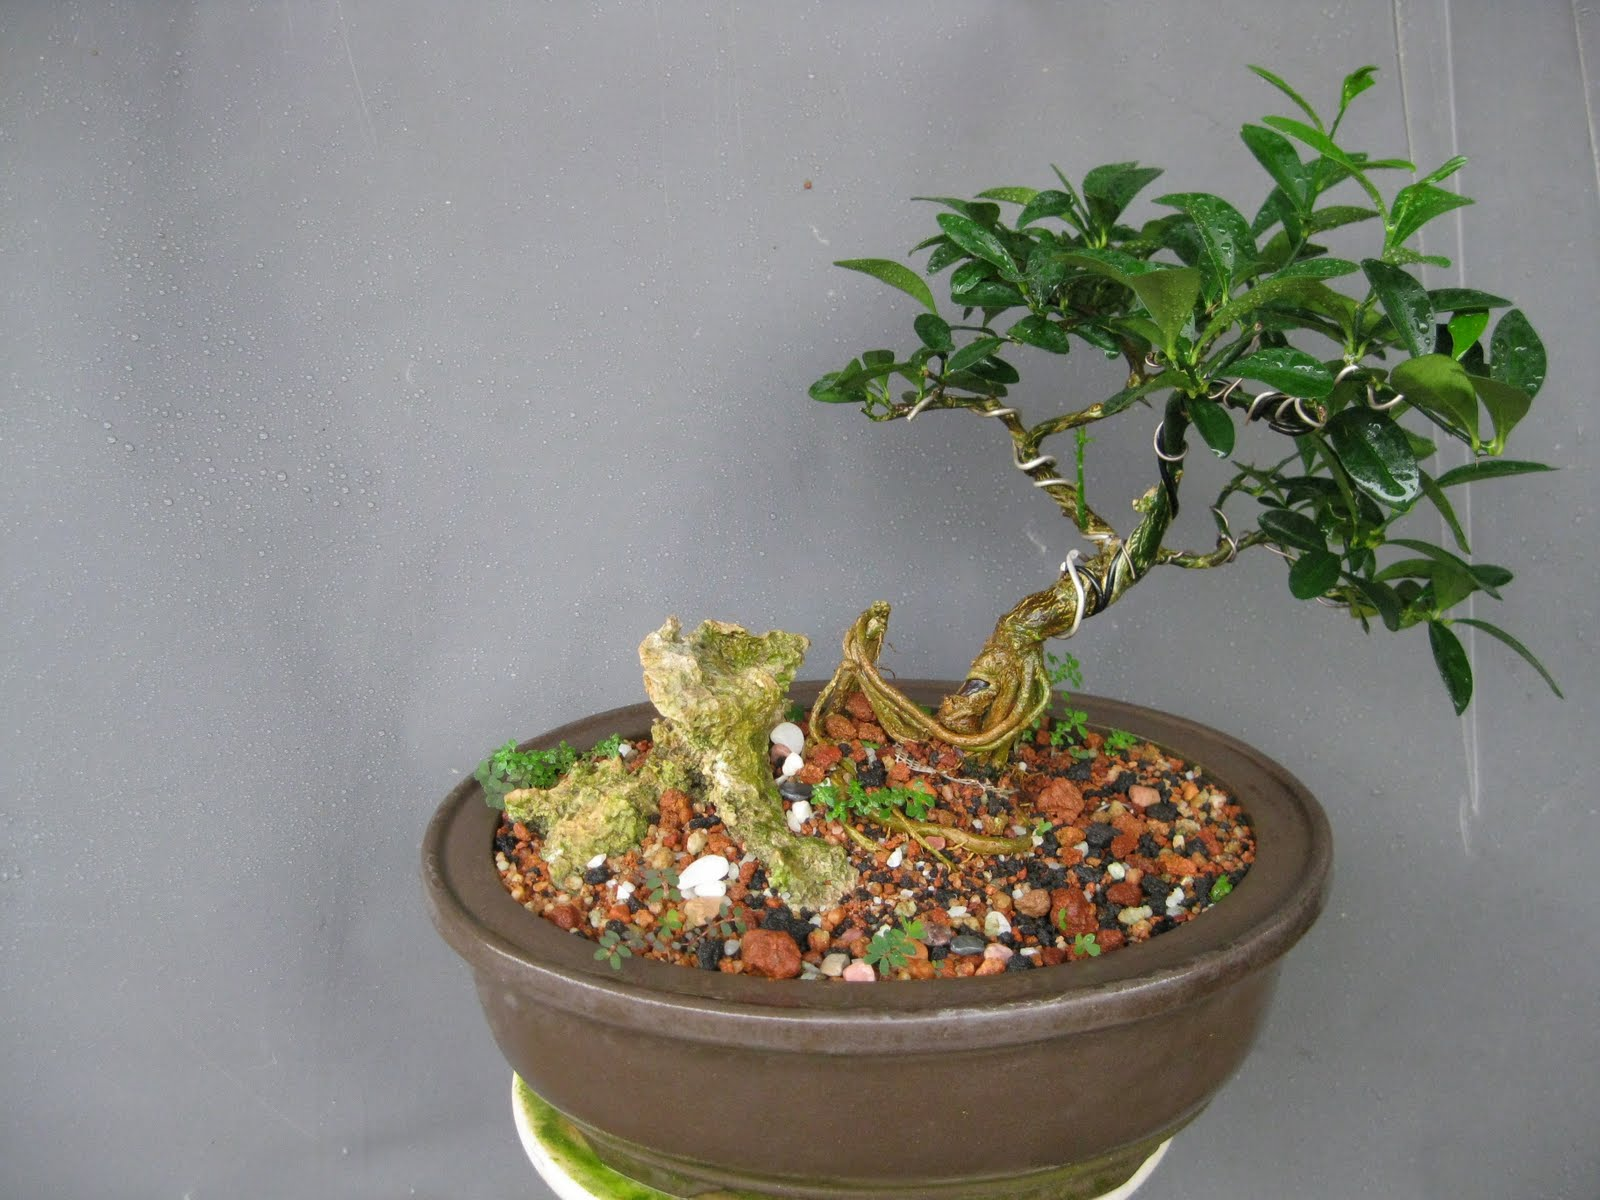 Tanama Hias Tanaman Hias: Bonsai N The Cat Iv